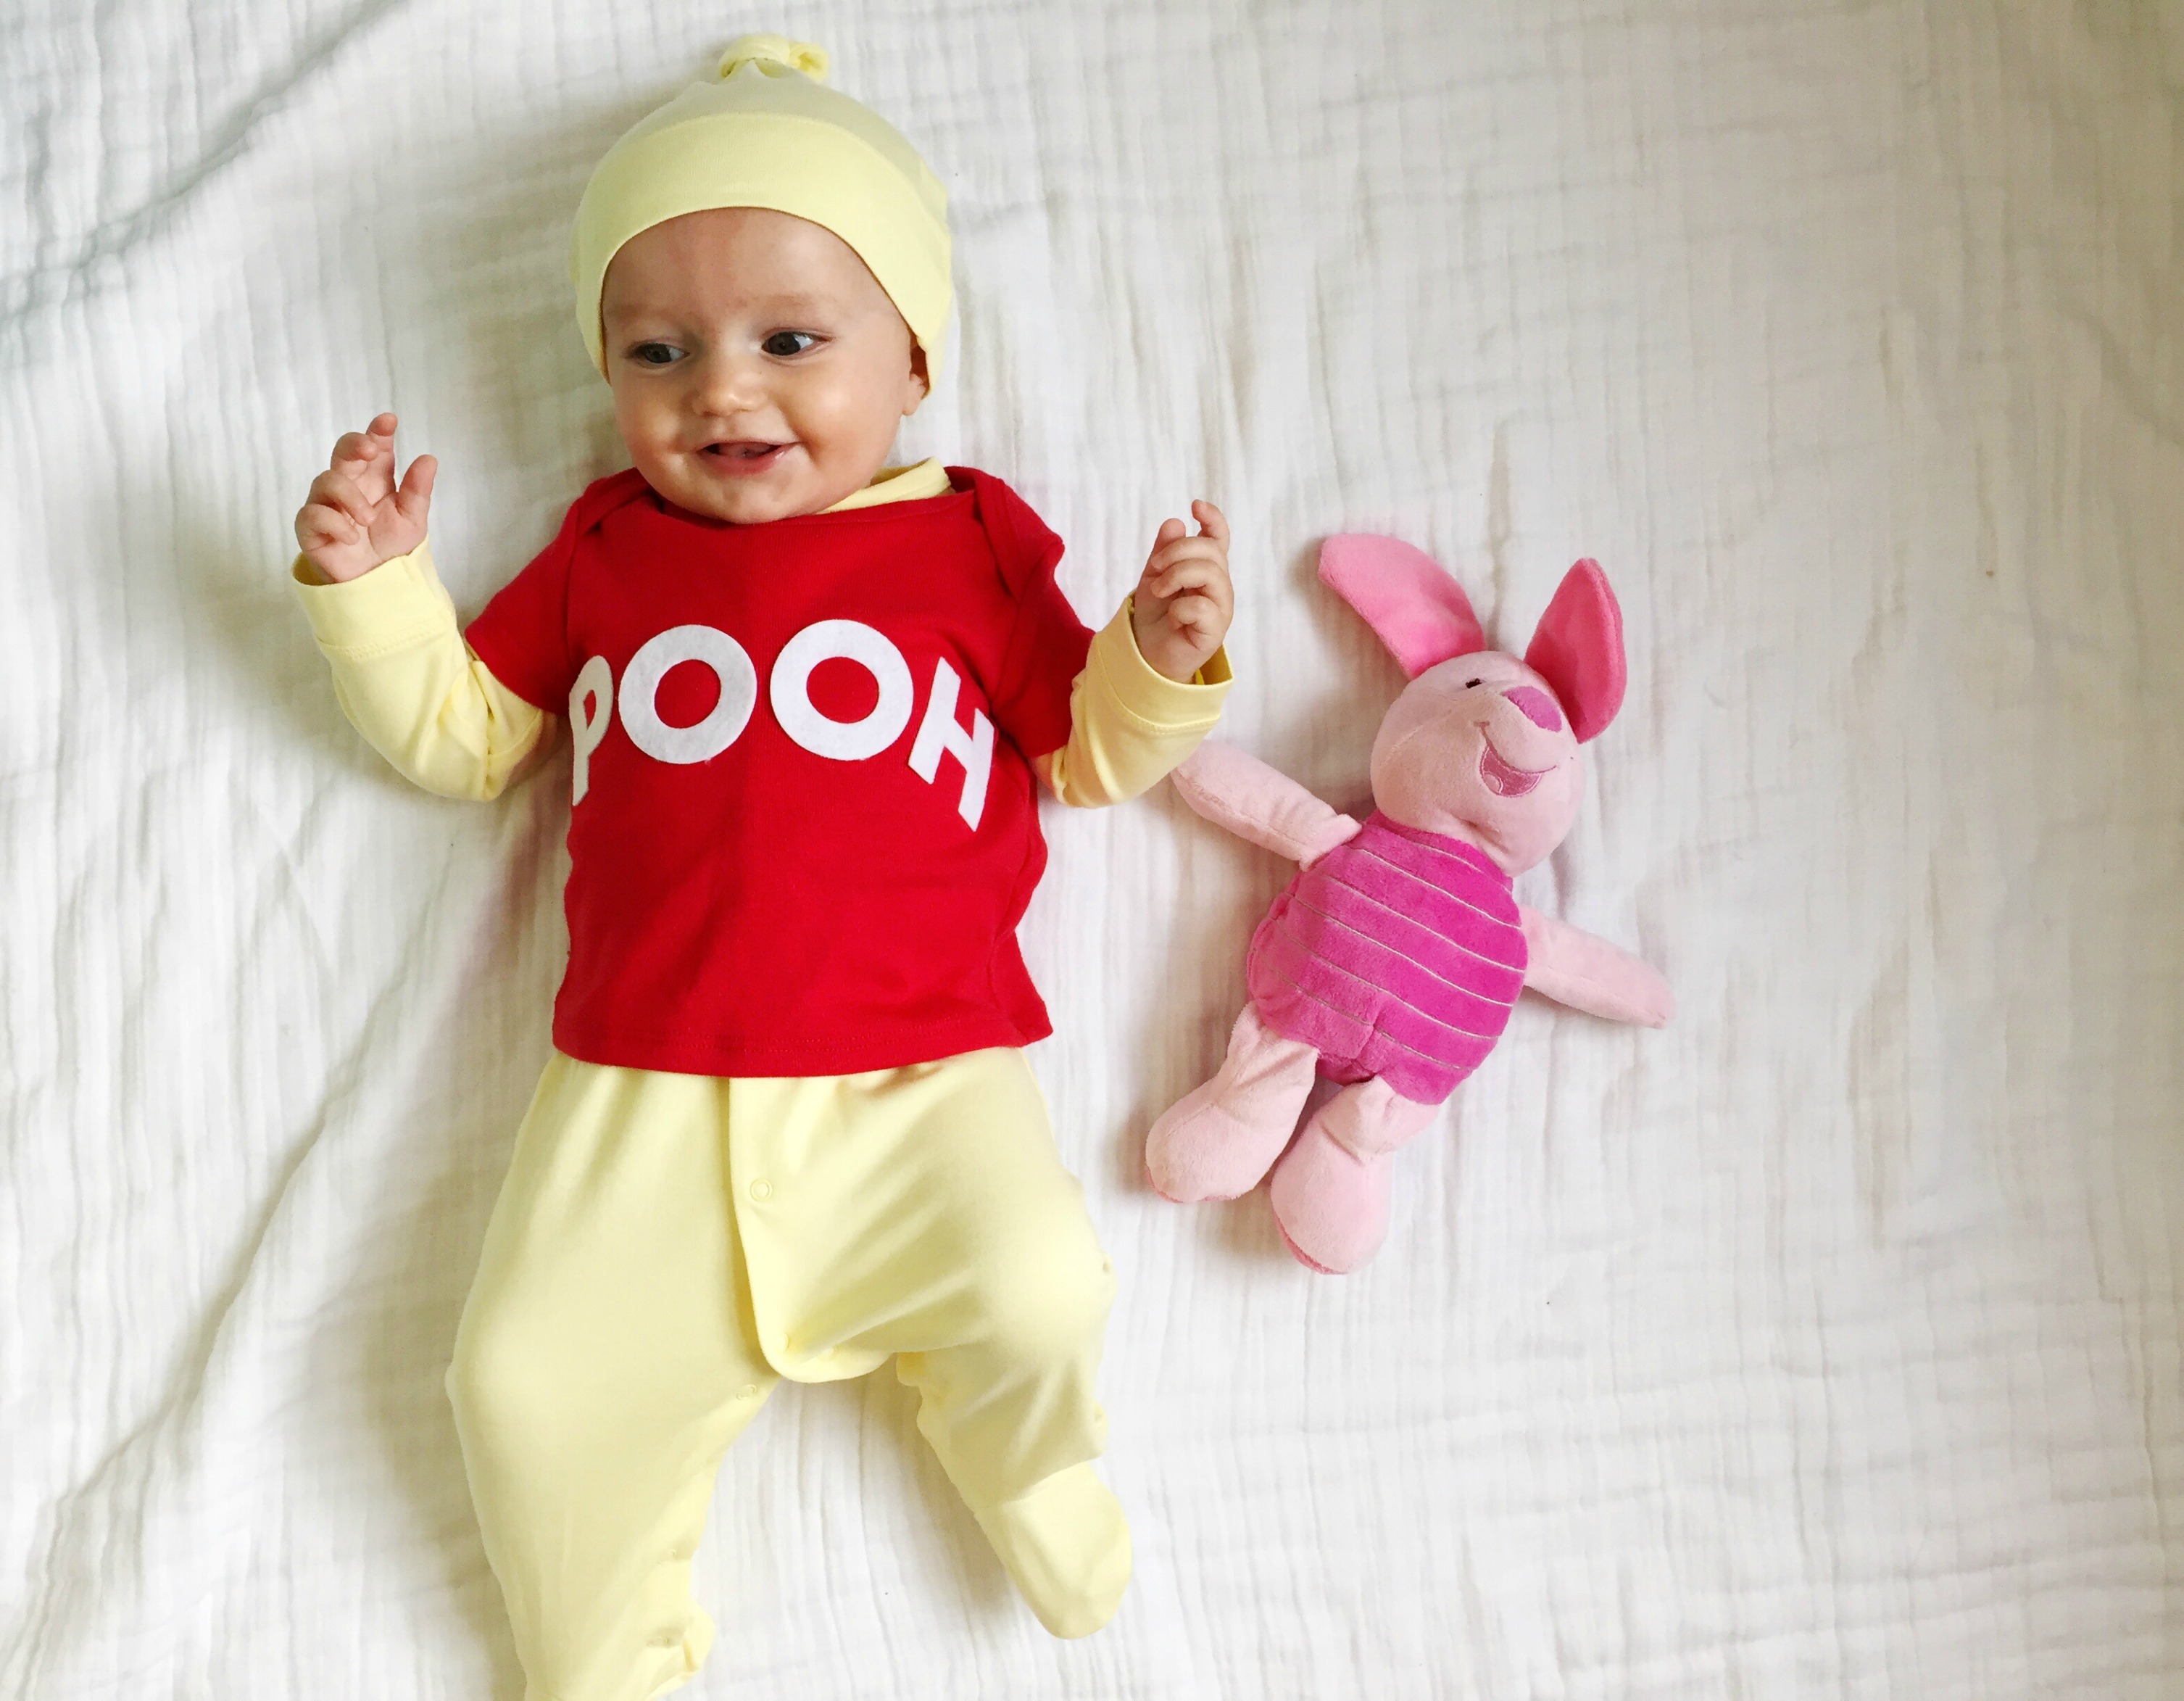 Mom And Baby Boy Halloween Costume Ideas.5 Easy Diy Halloween Costumes For Baby The Chirping Moms